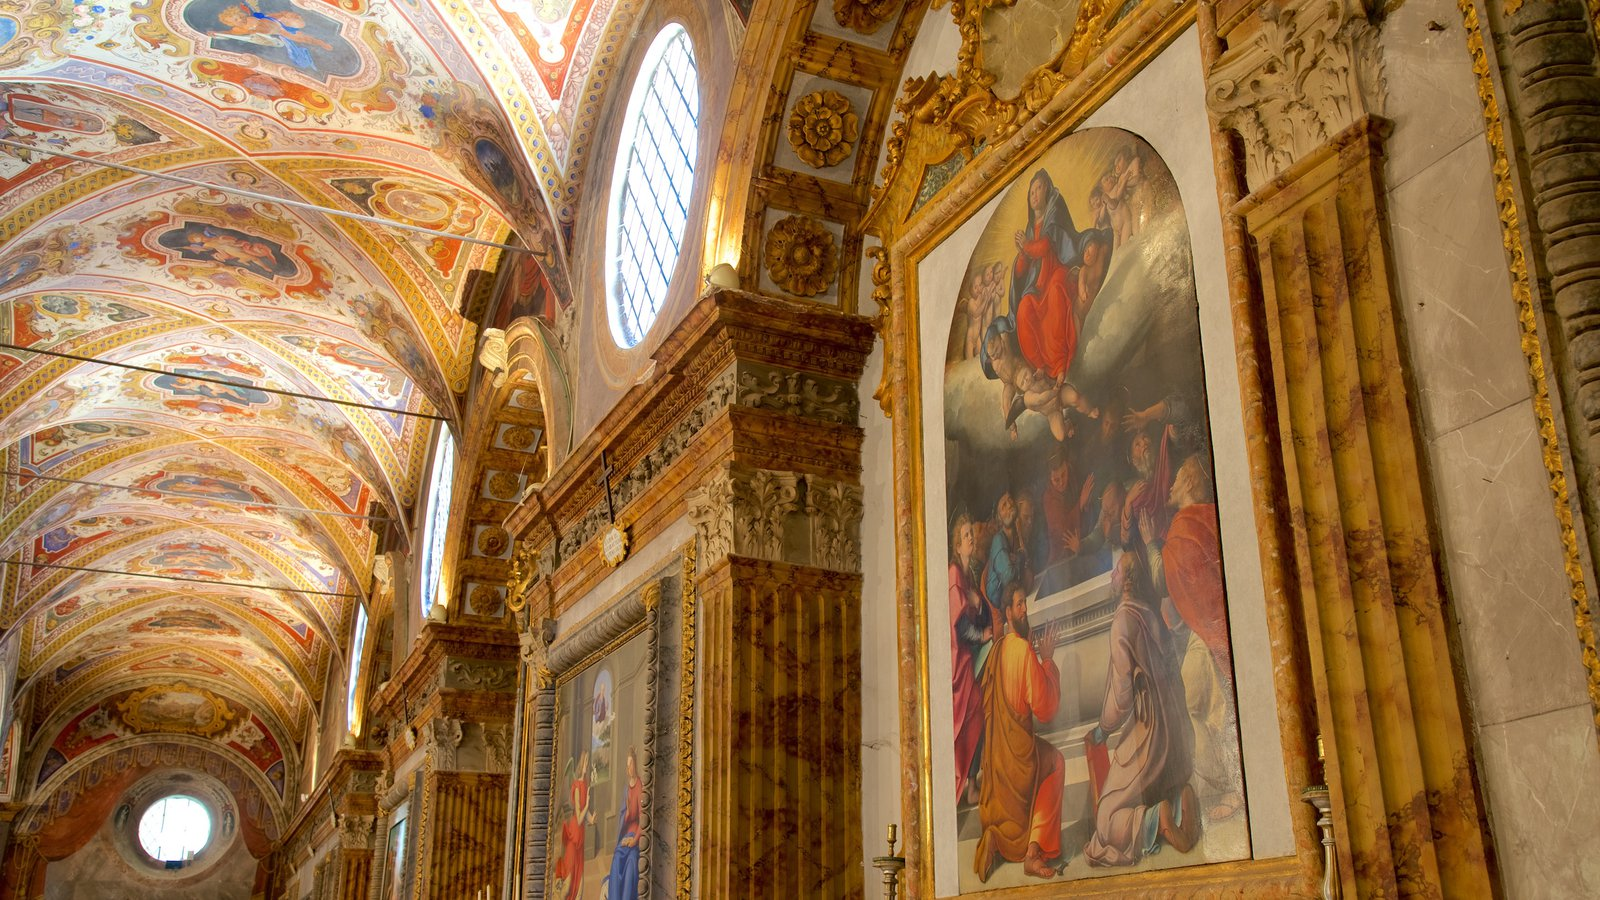 Basilica San Pietro showing interior views, religious aspects and a church or cathedral